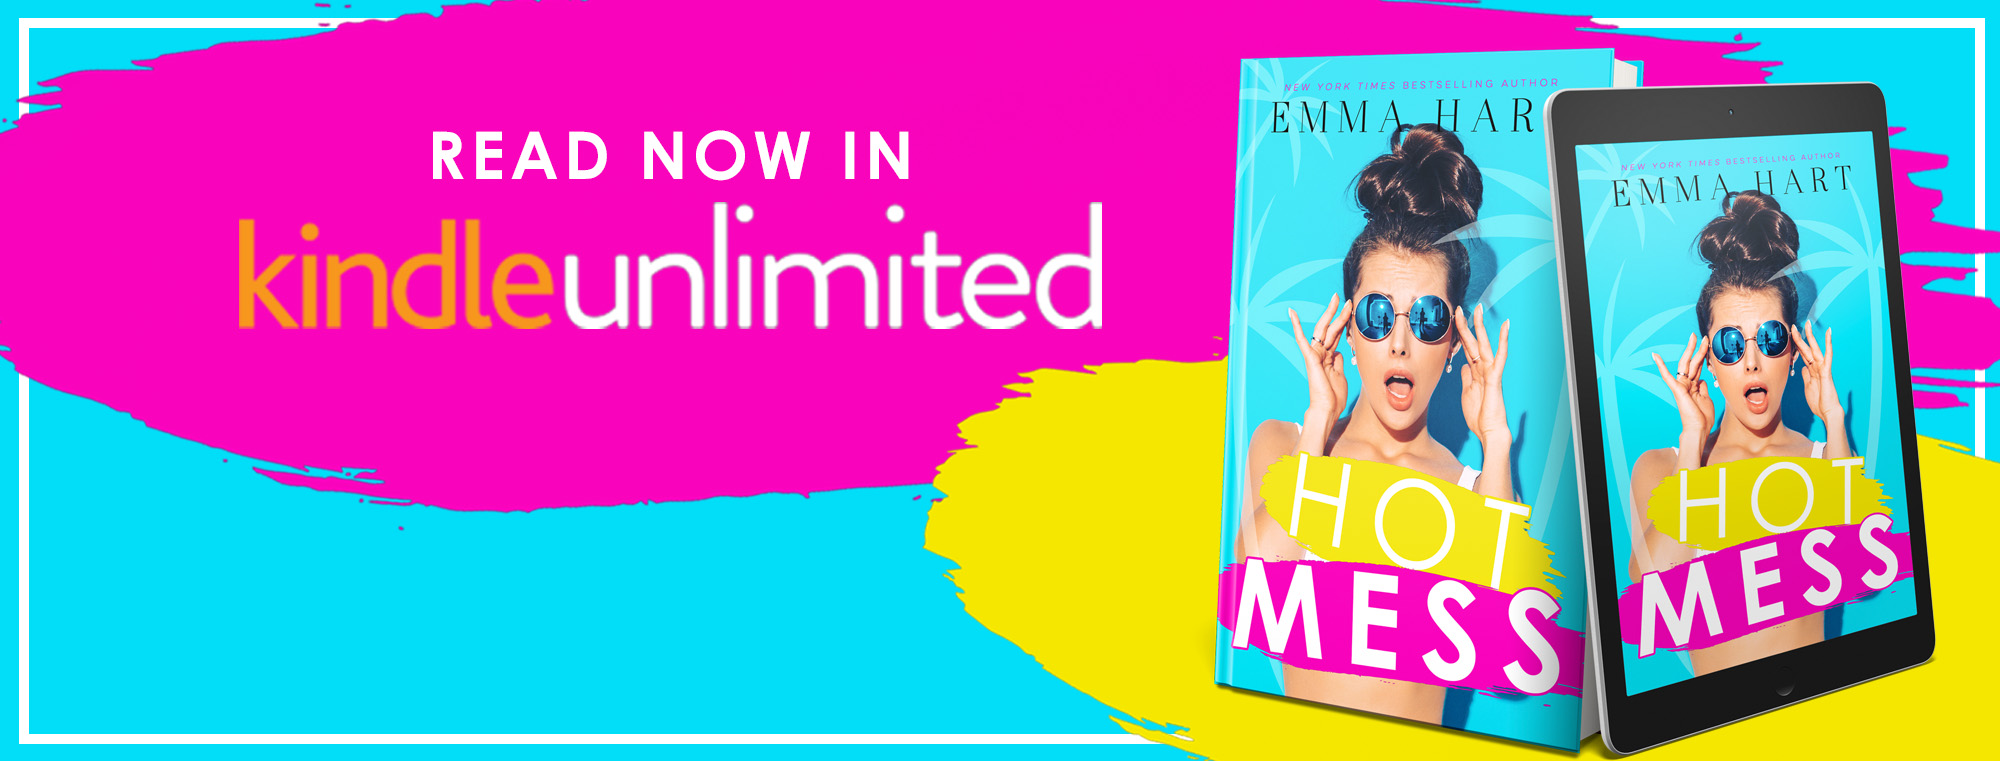 Blog Tour Review: Hot Mess by Emma Hart